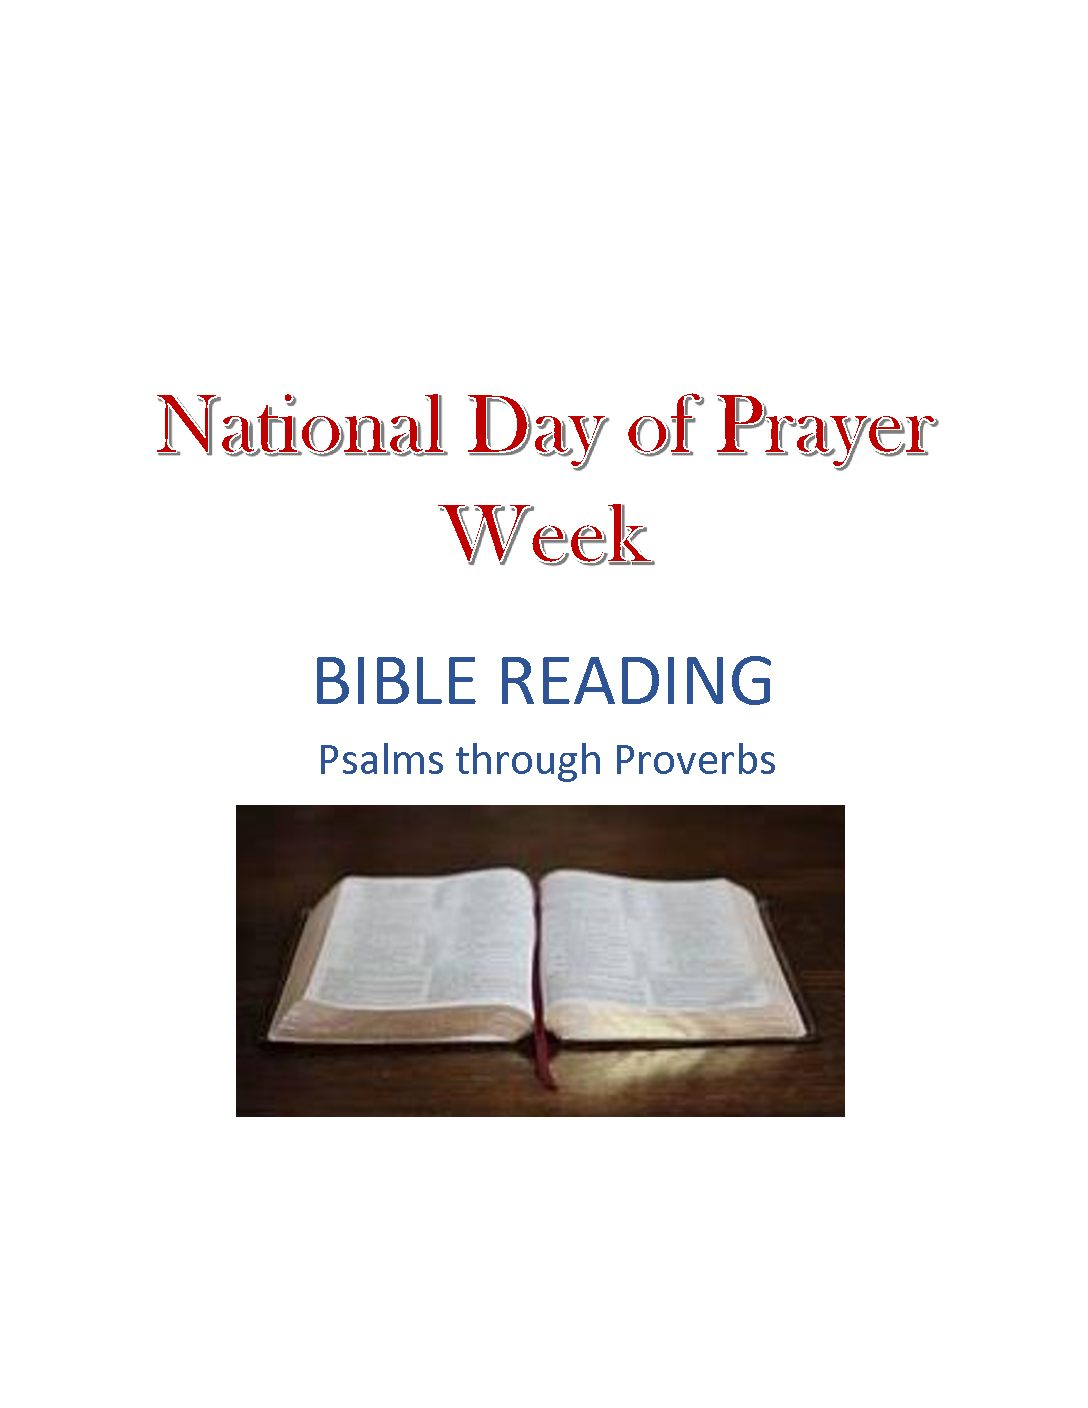 National Day of Prayer Public Bible Reading 2021